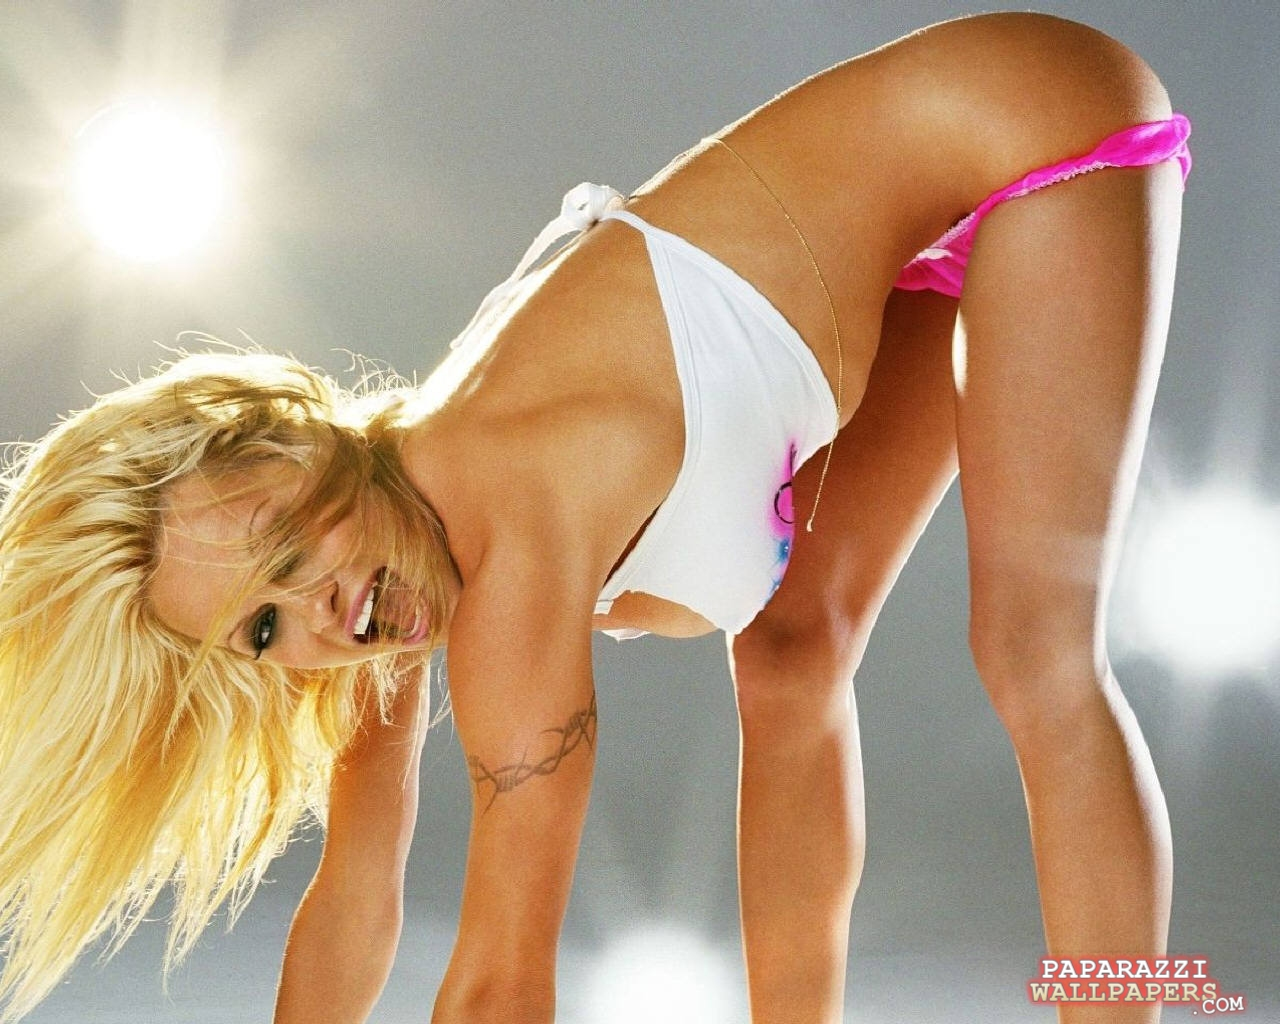 pamela anderson wallpapers 068